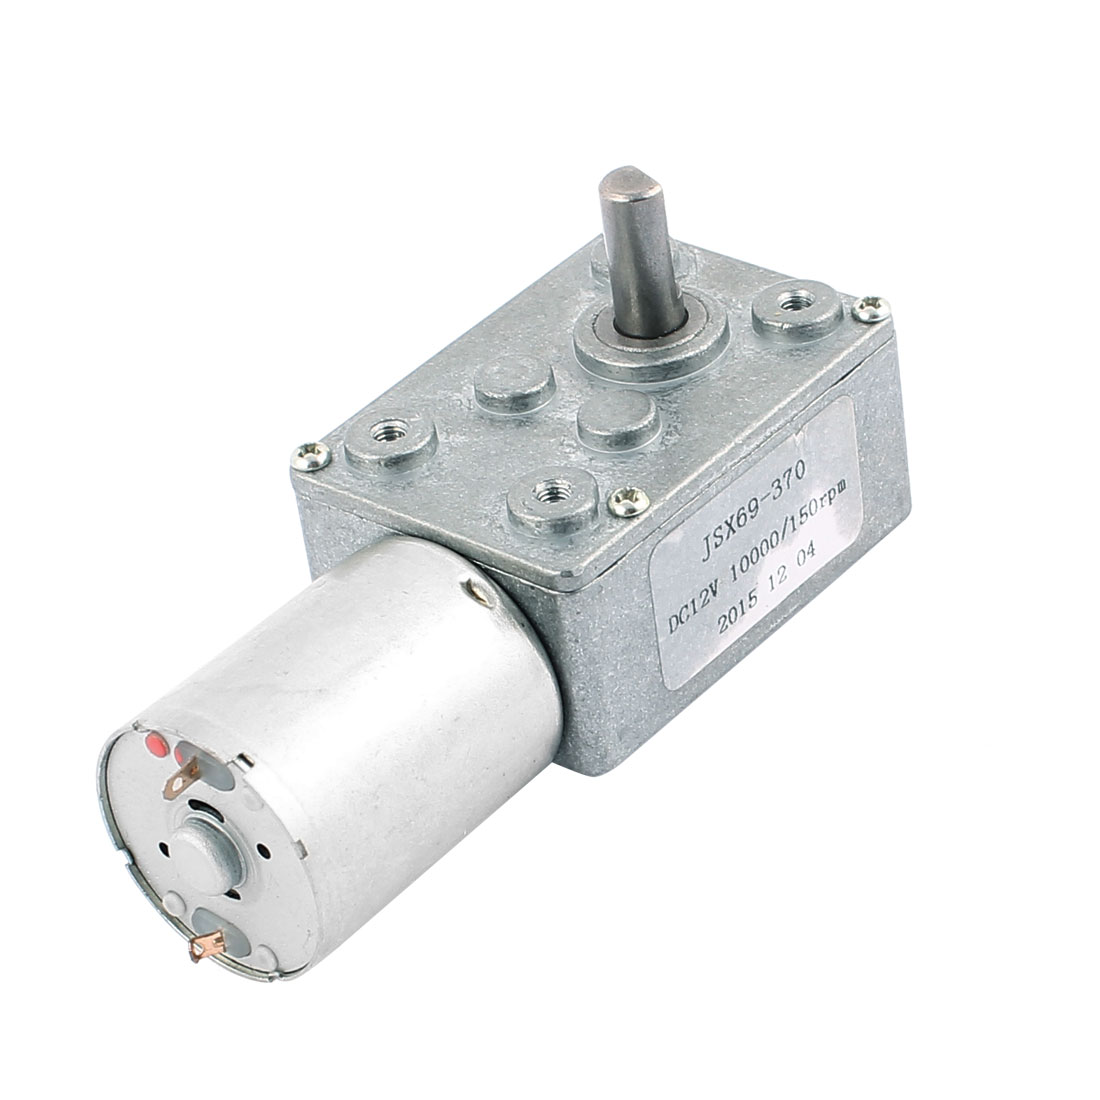 DC12V 10000/150RPM 2 Terminals Connect Turbine Worm Reducer DC Motor JSX69-370